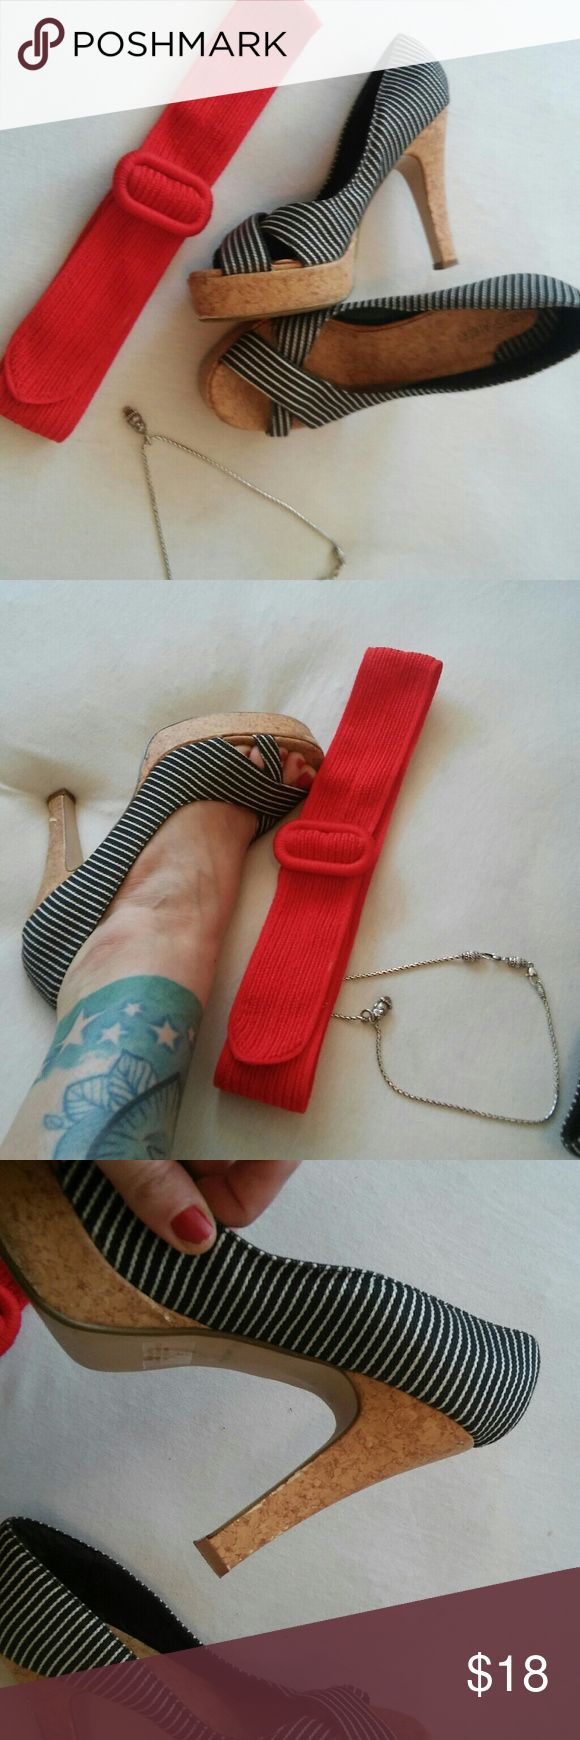 8 Nautical jean stipe cork heels Used but still in good condition. Some scrapes on cork. Really cute for summer. True size 8 charles albert Shoes